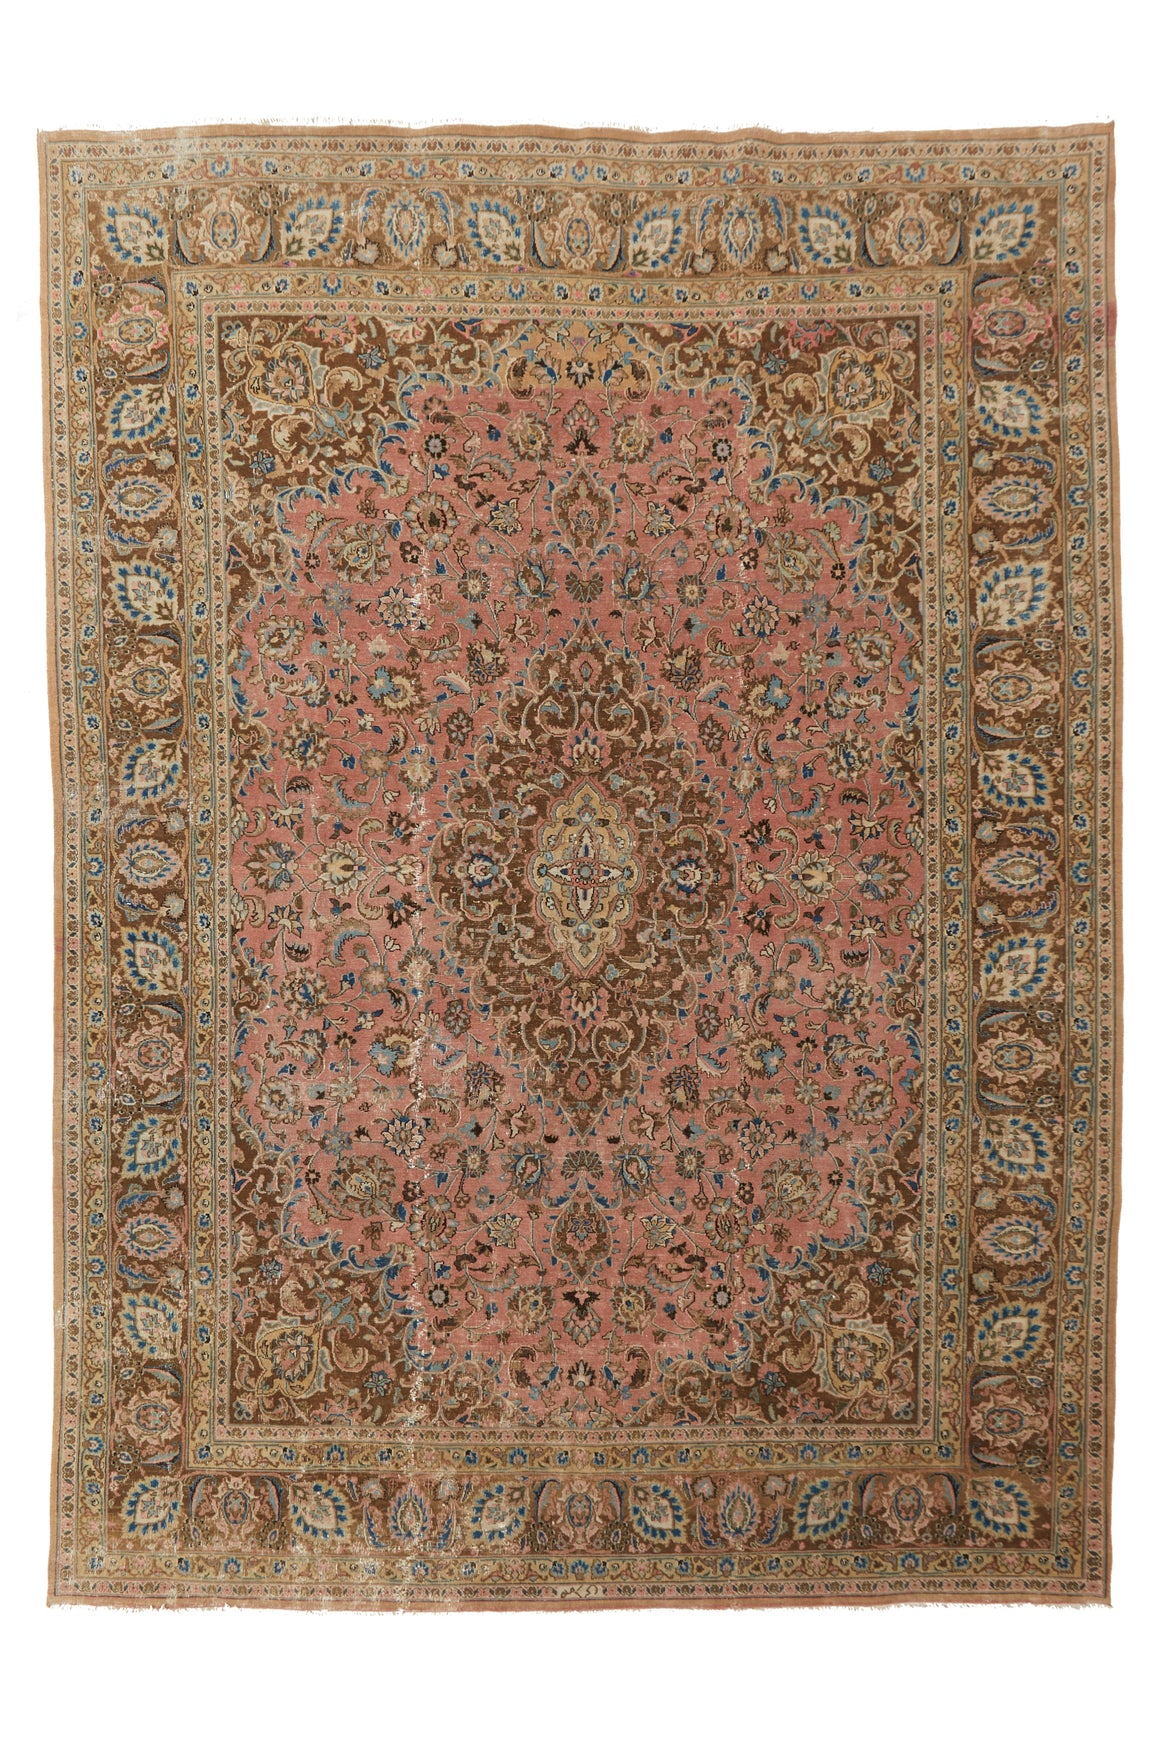 "'Viola' Palace-Sized Antique Persian Rug - 9'8"" x 13'5"""